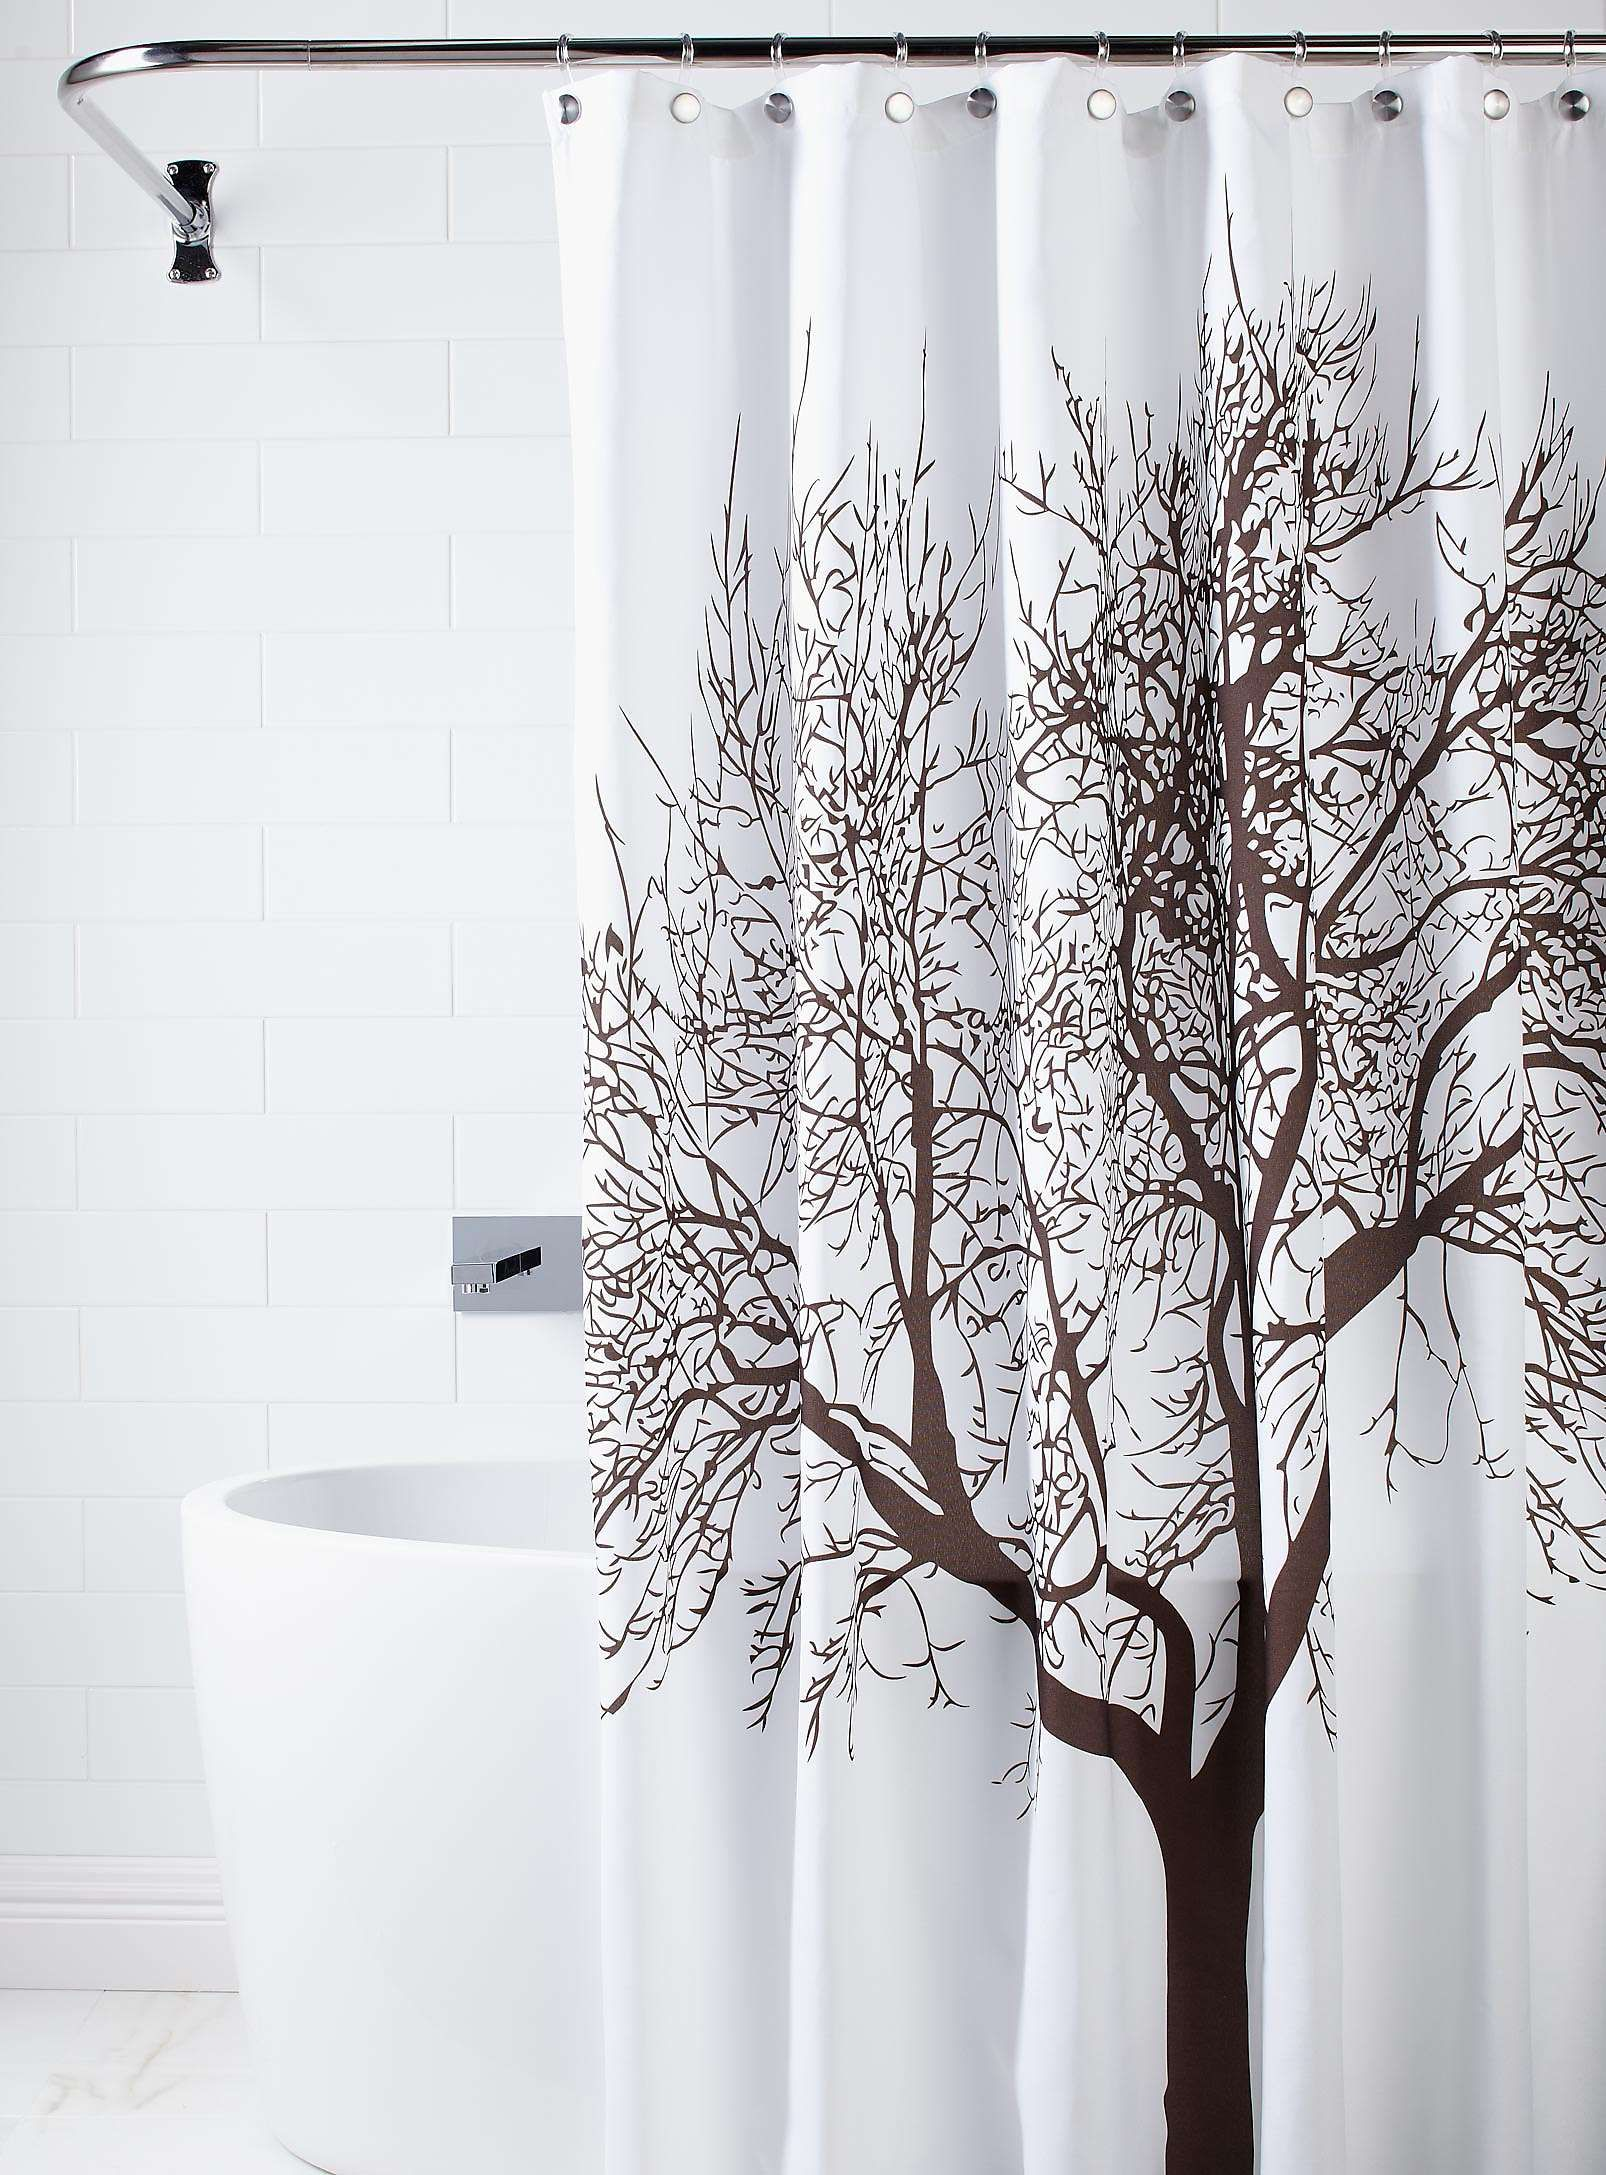 Sublime rideau de douche arbre toilette pinterest for Rideau de douche plus de 2 metres